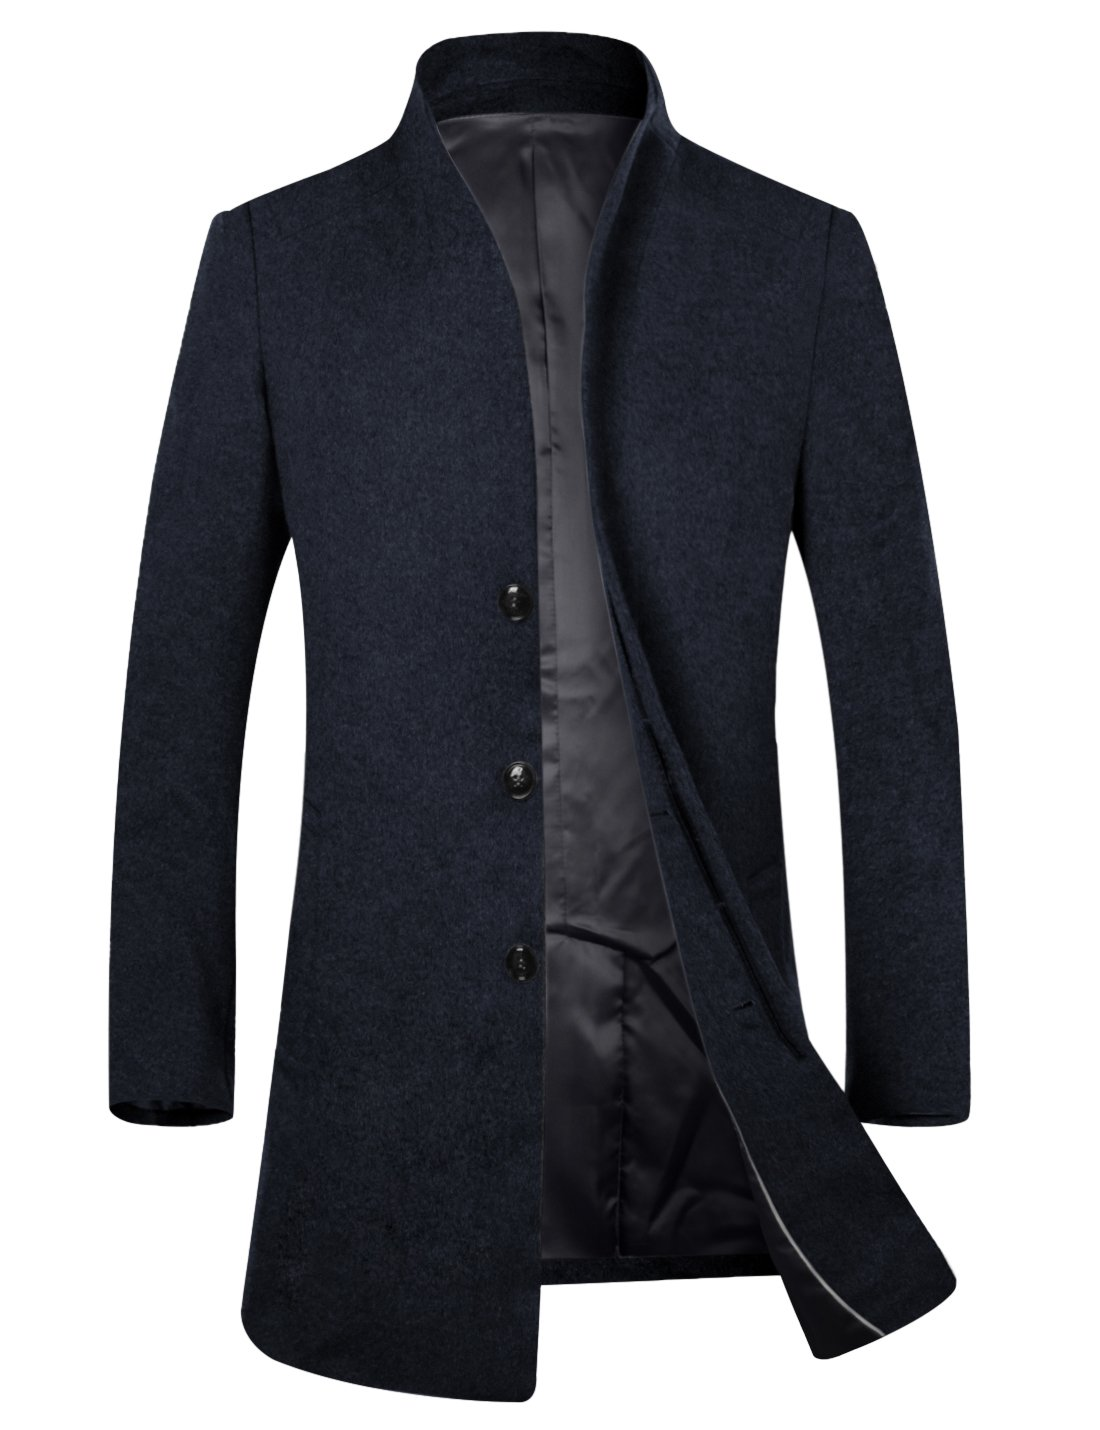 APTRO DZDY Men's Wool French Front Slim Fit Long Business Coat 1681 Navy XL by APTRO